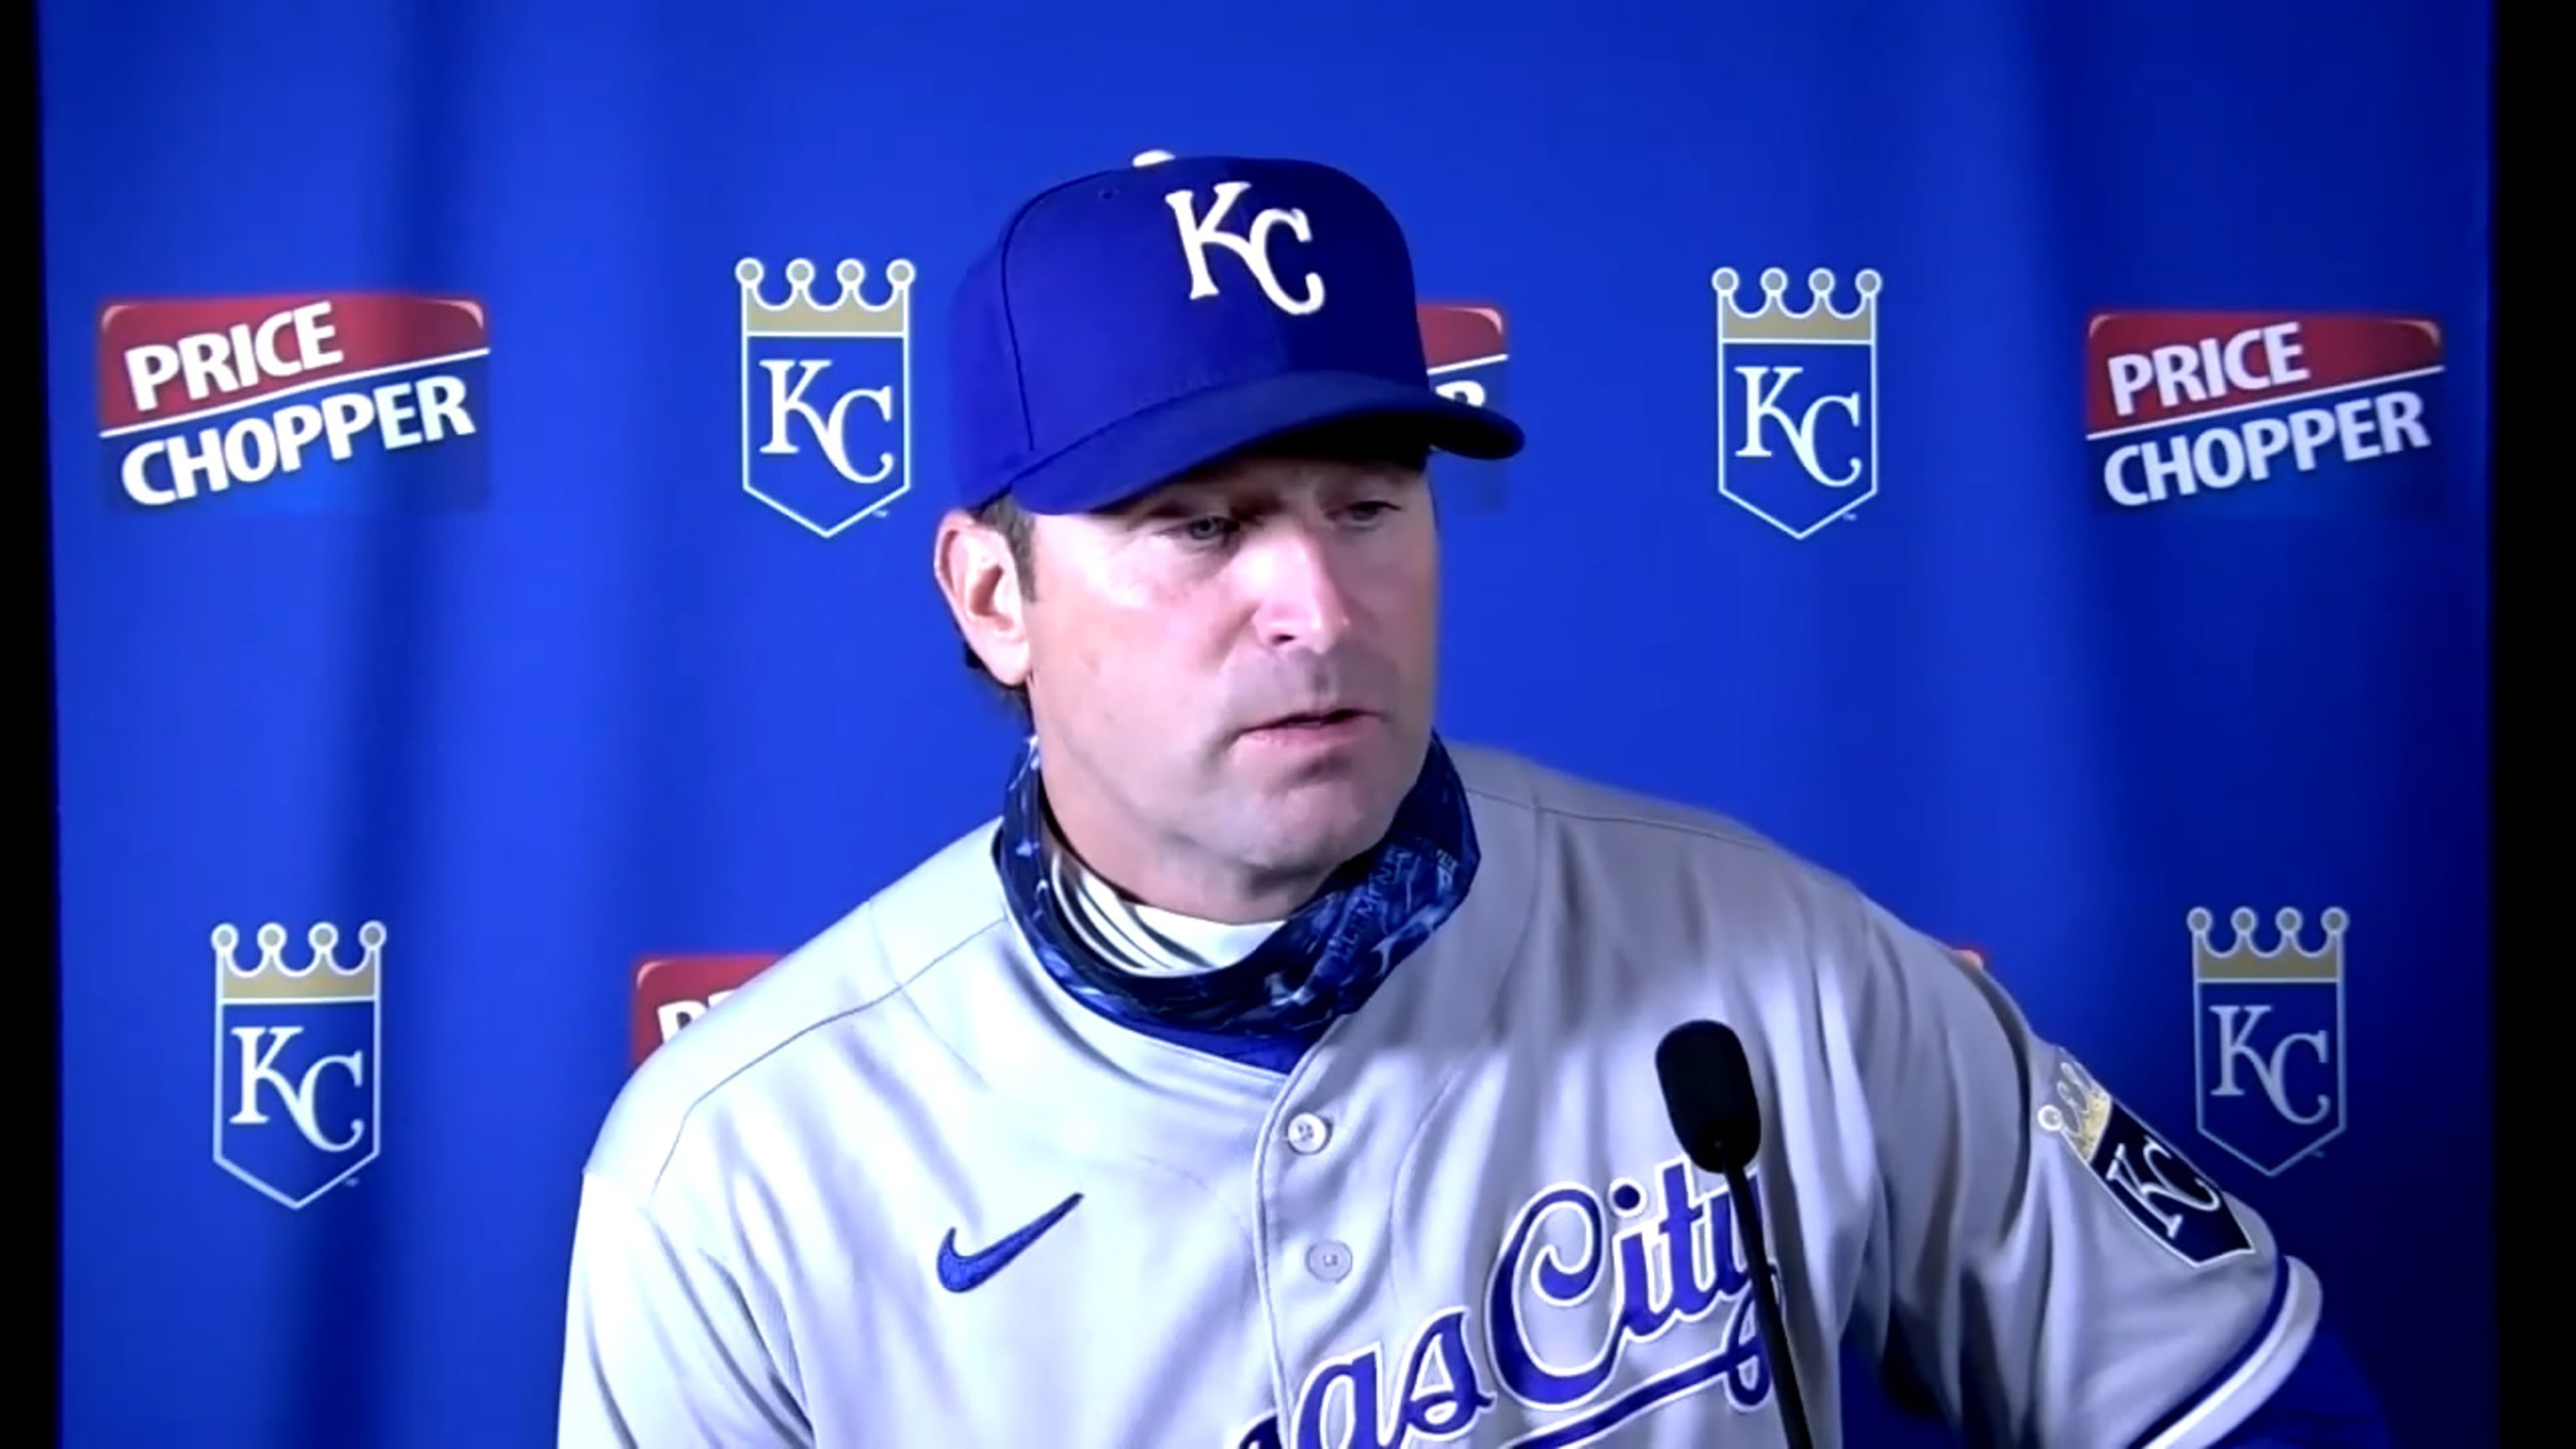 Mike Matheny sobre Singer in win